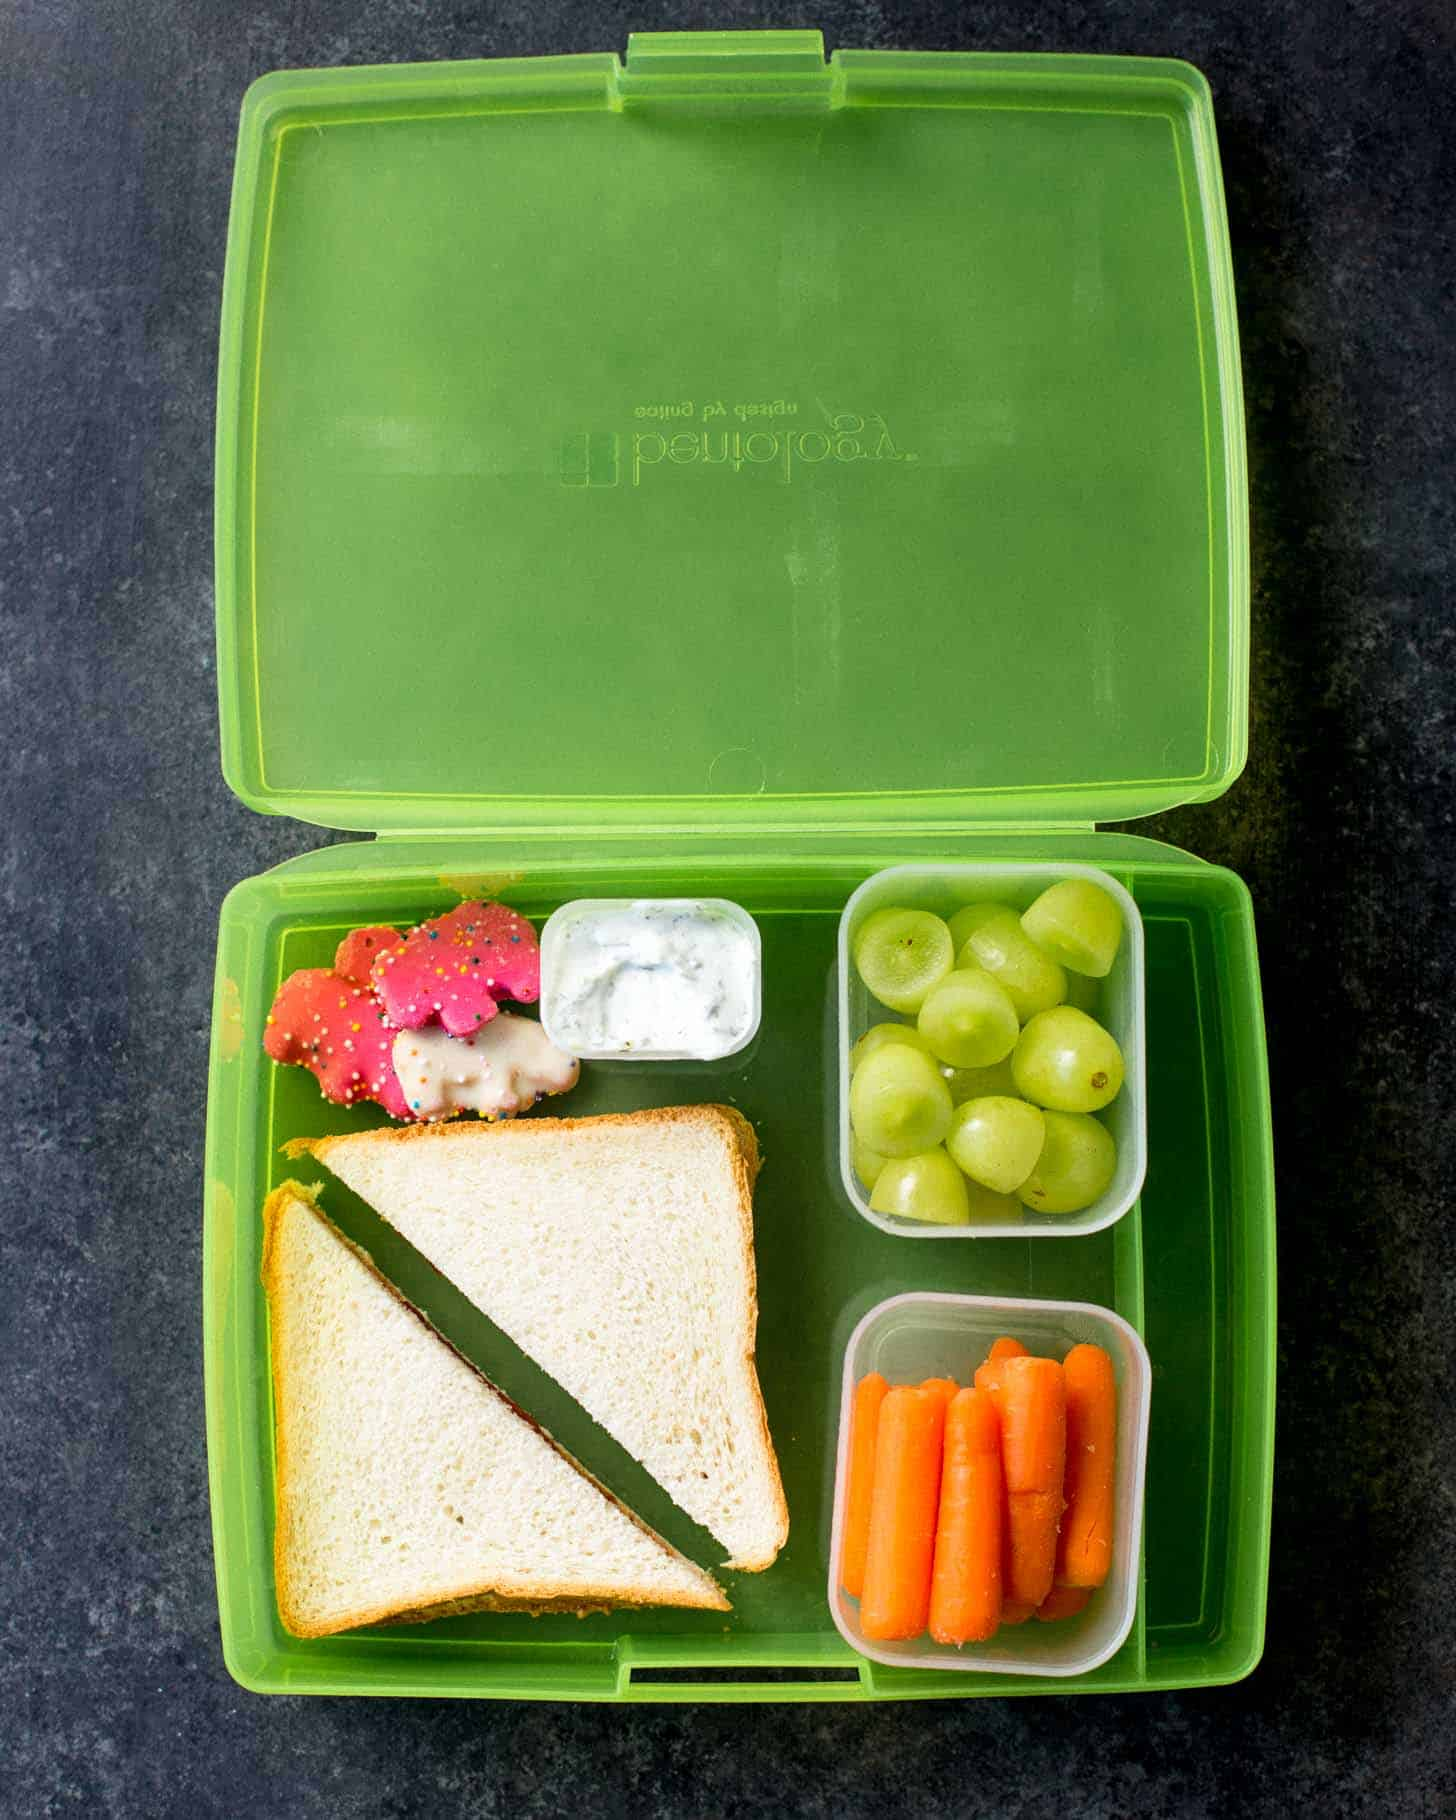 Bentology packed with Classic Lunch